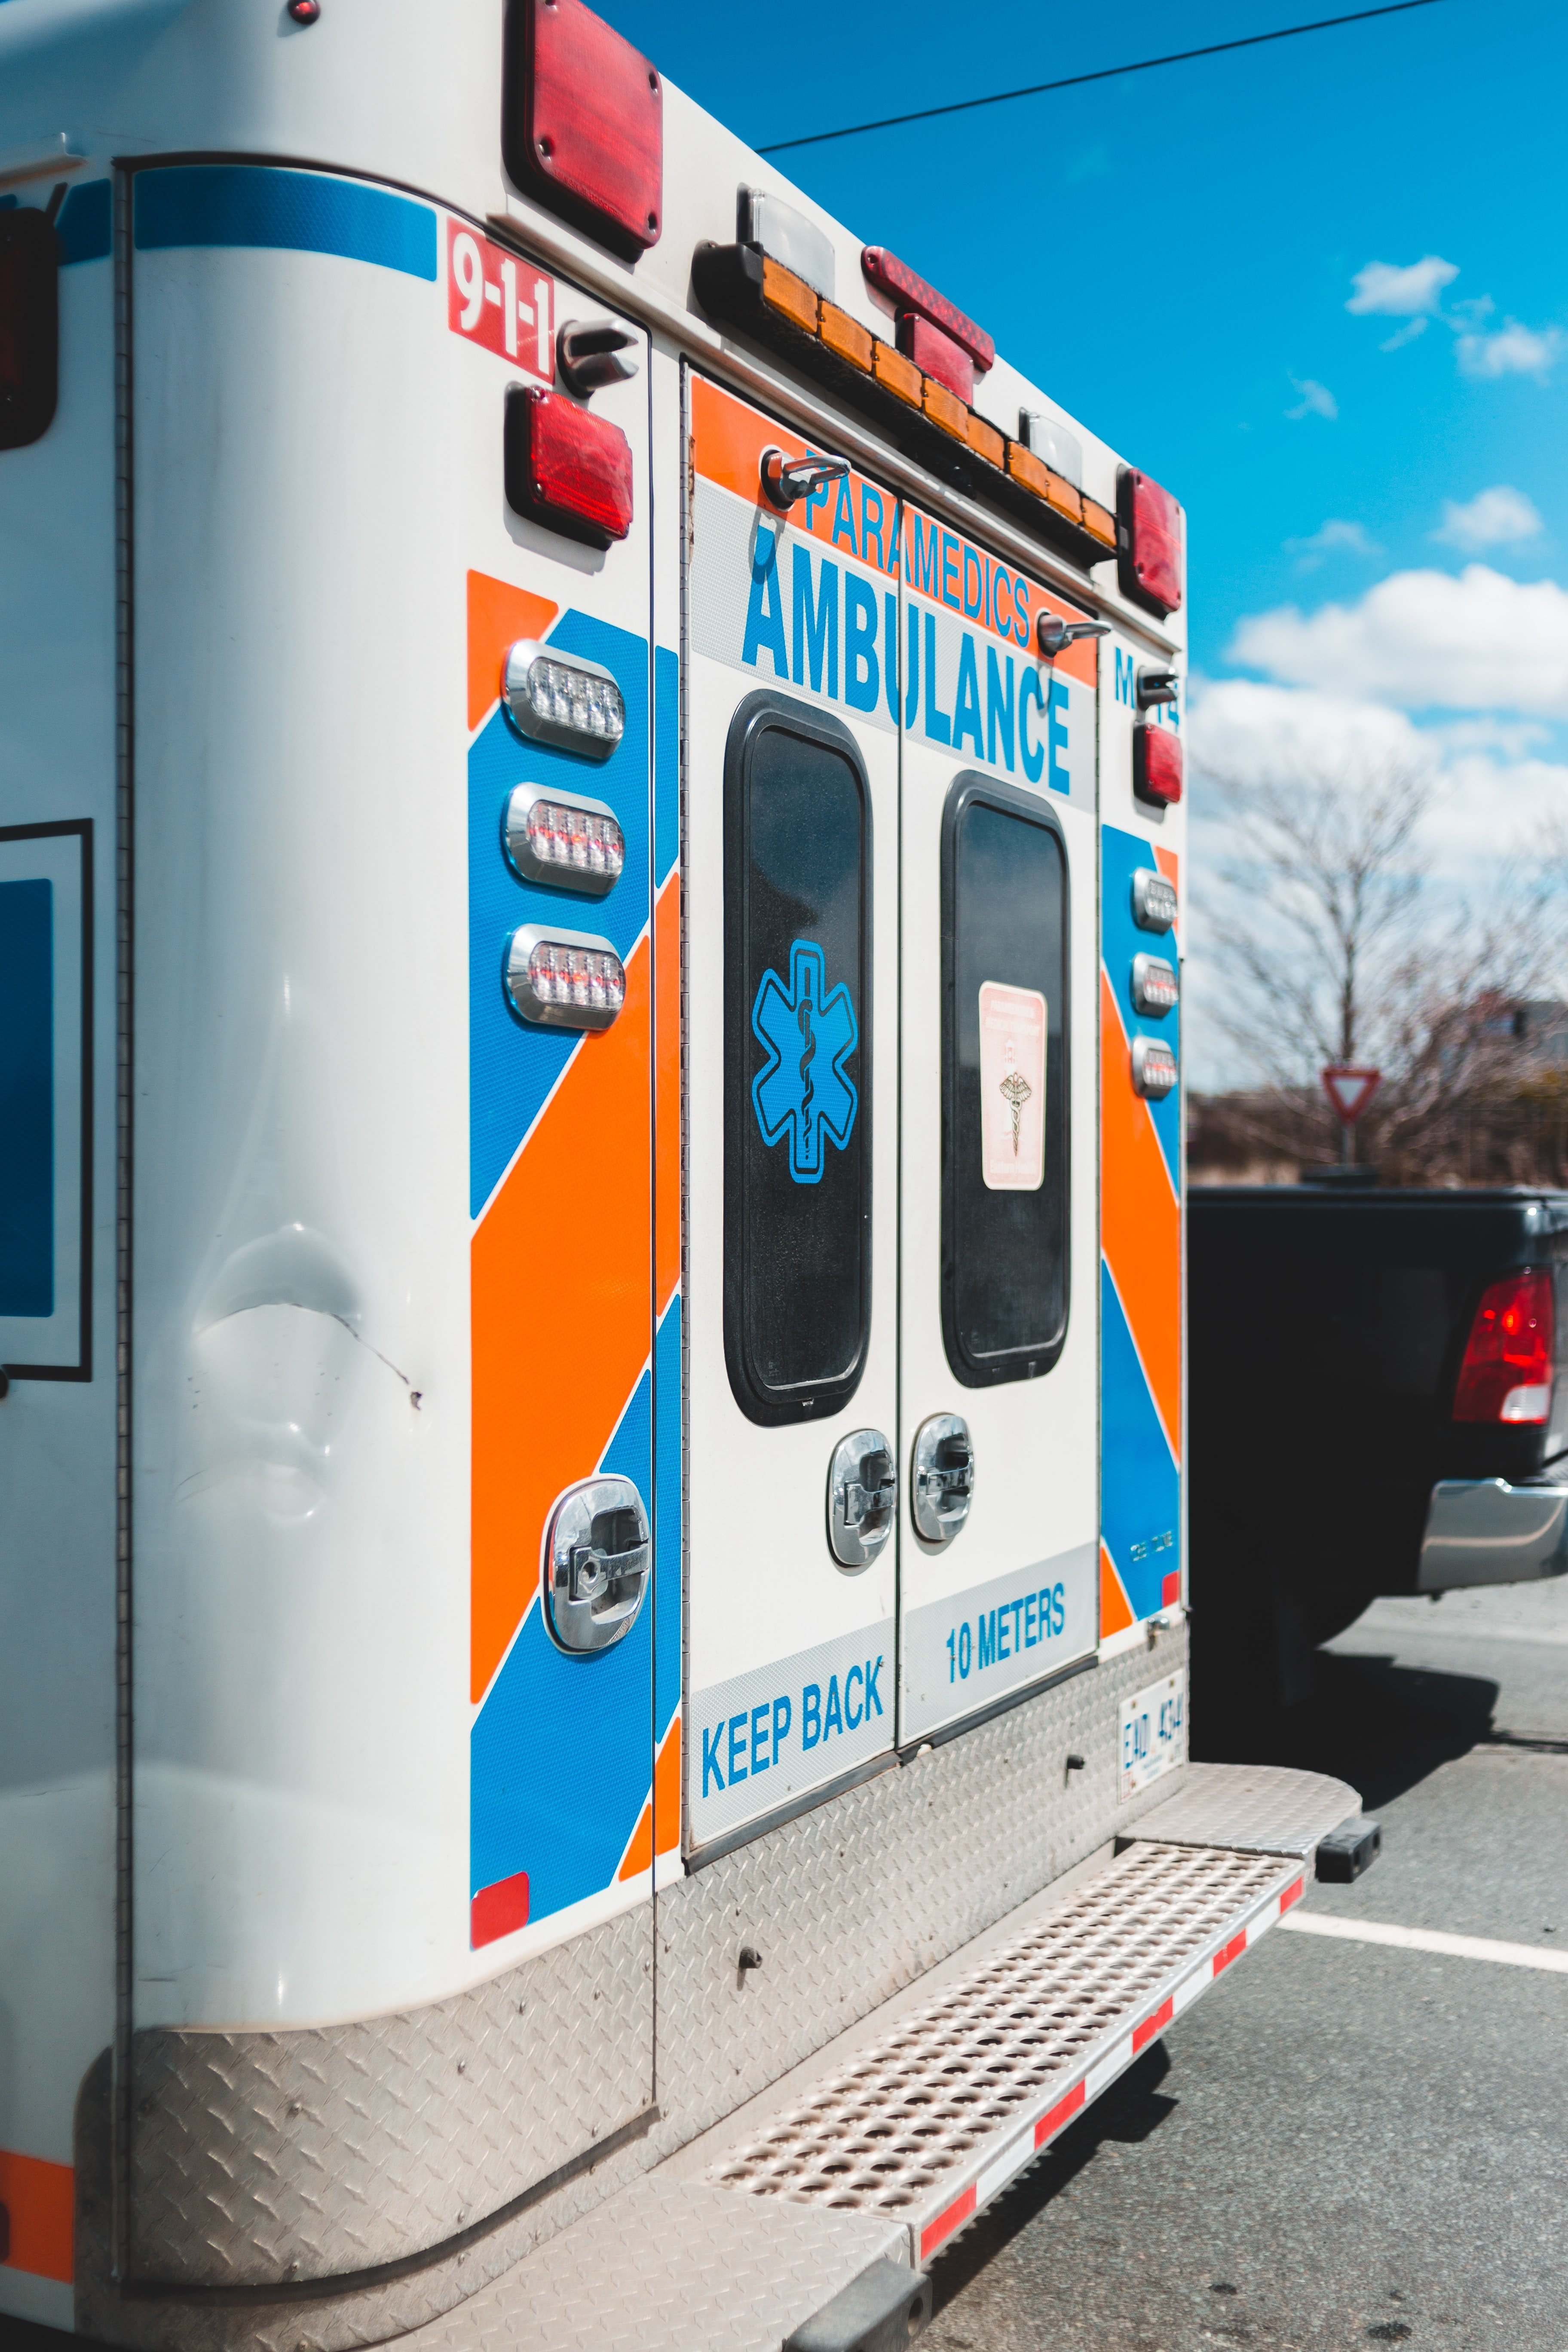 An ambulance parked in front of his house. | Source: Unsplash